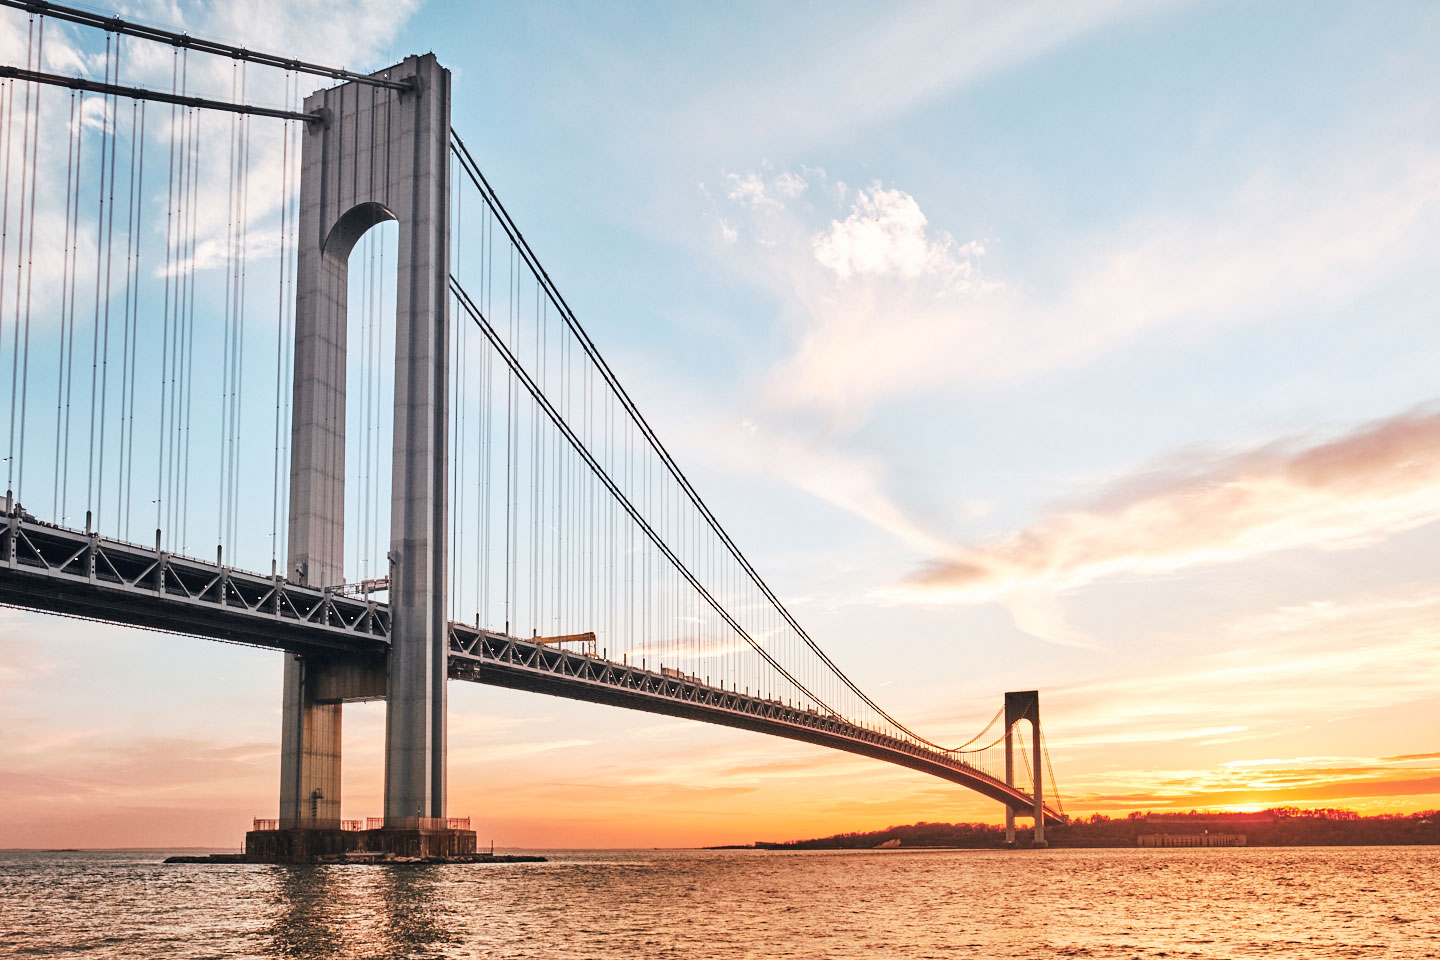 New York Verrazano Bridge Travel Photographer Marcus Lewis web-60-percent